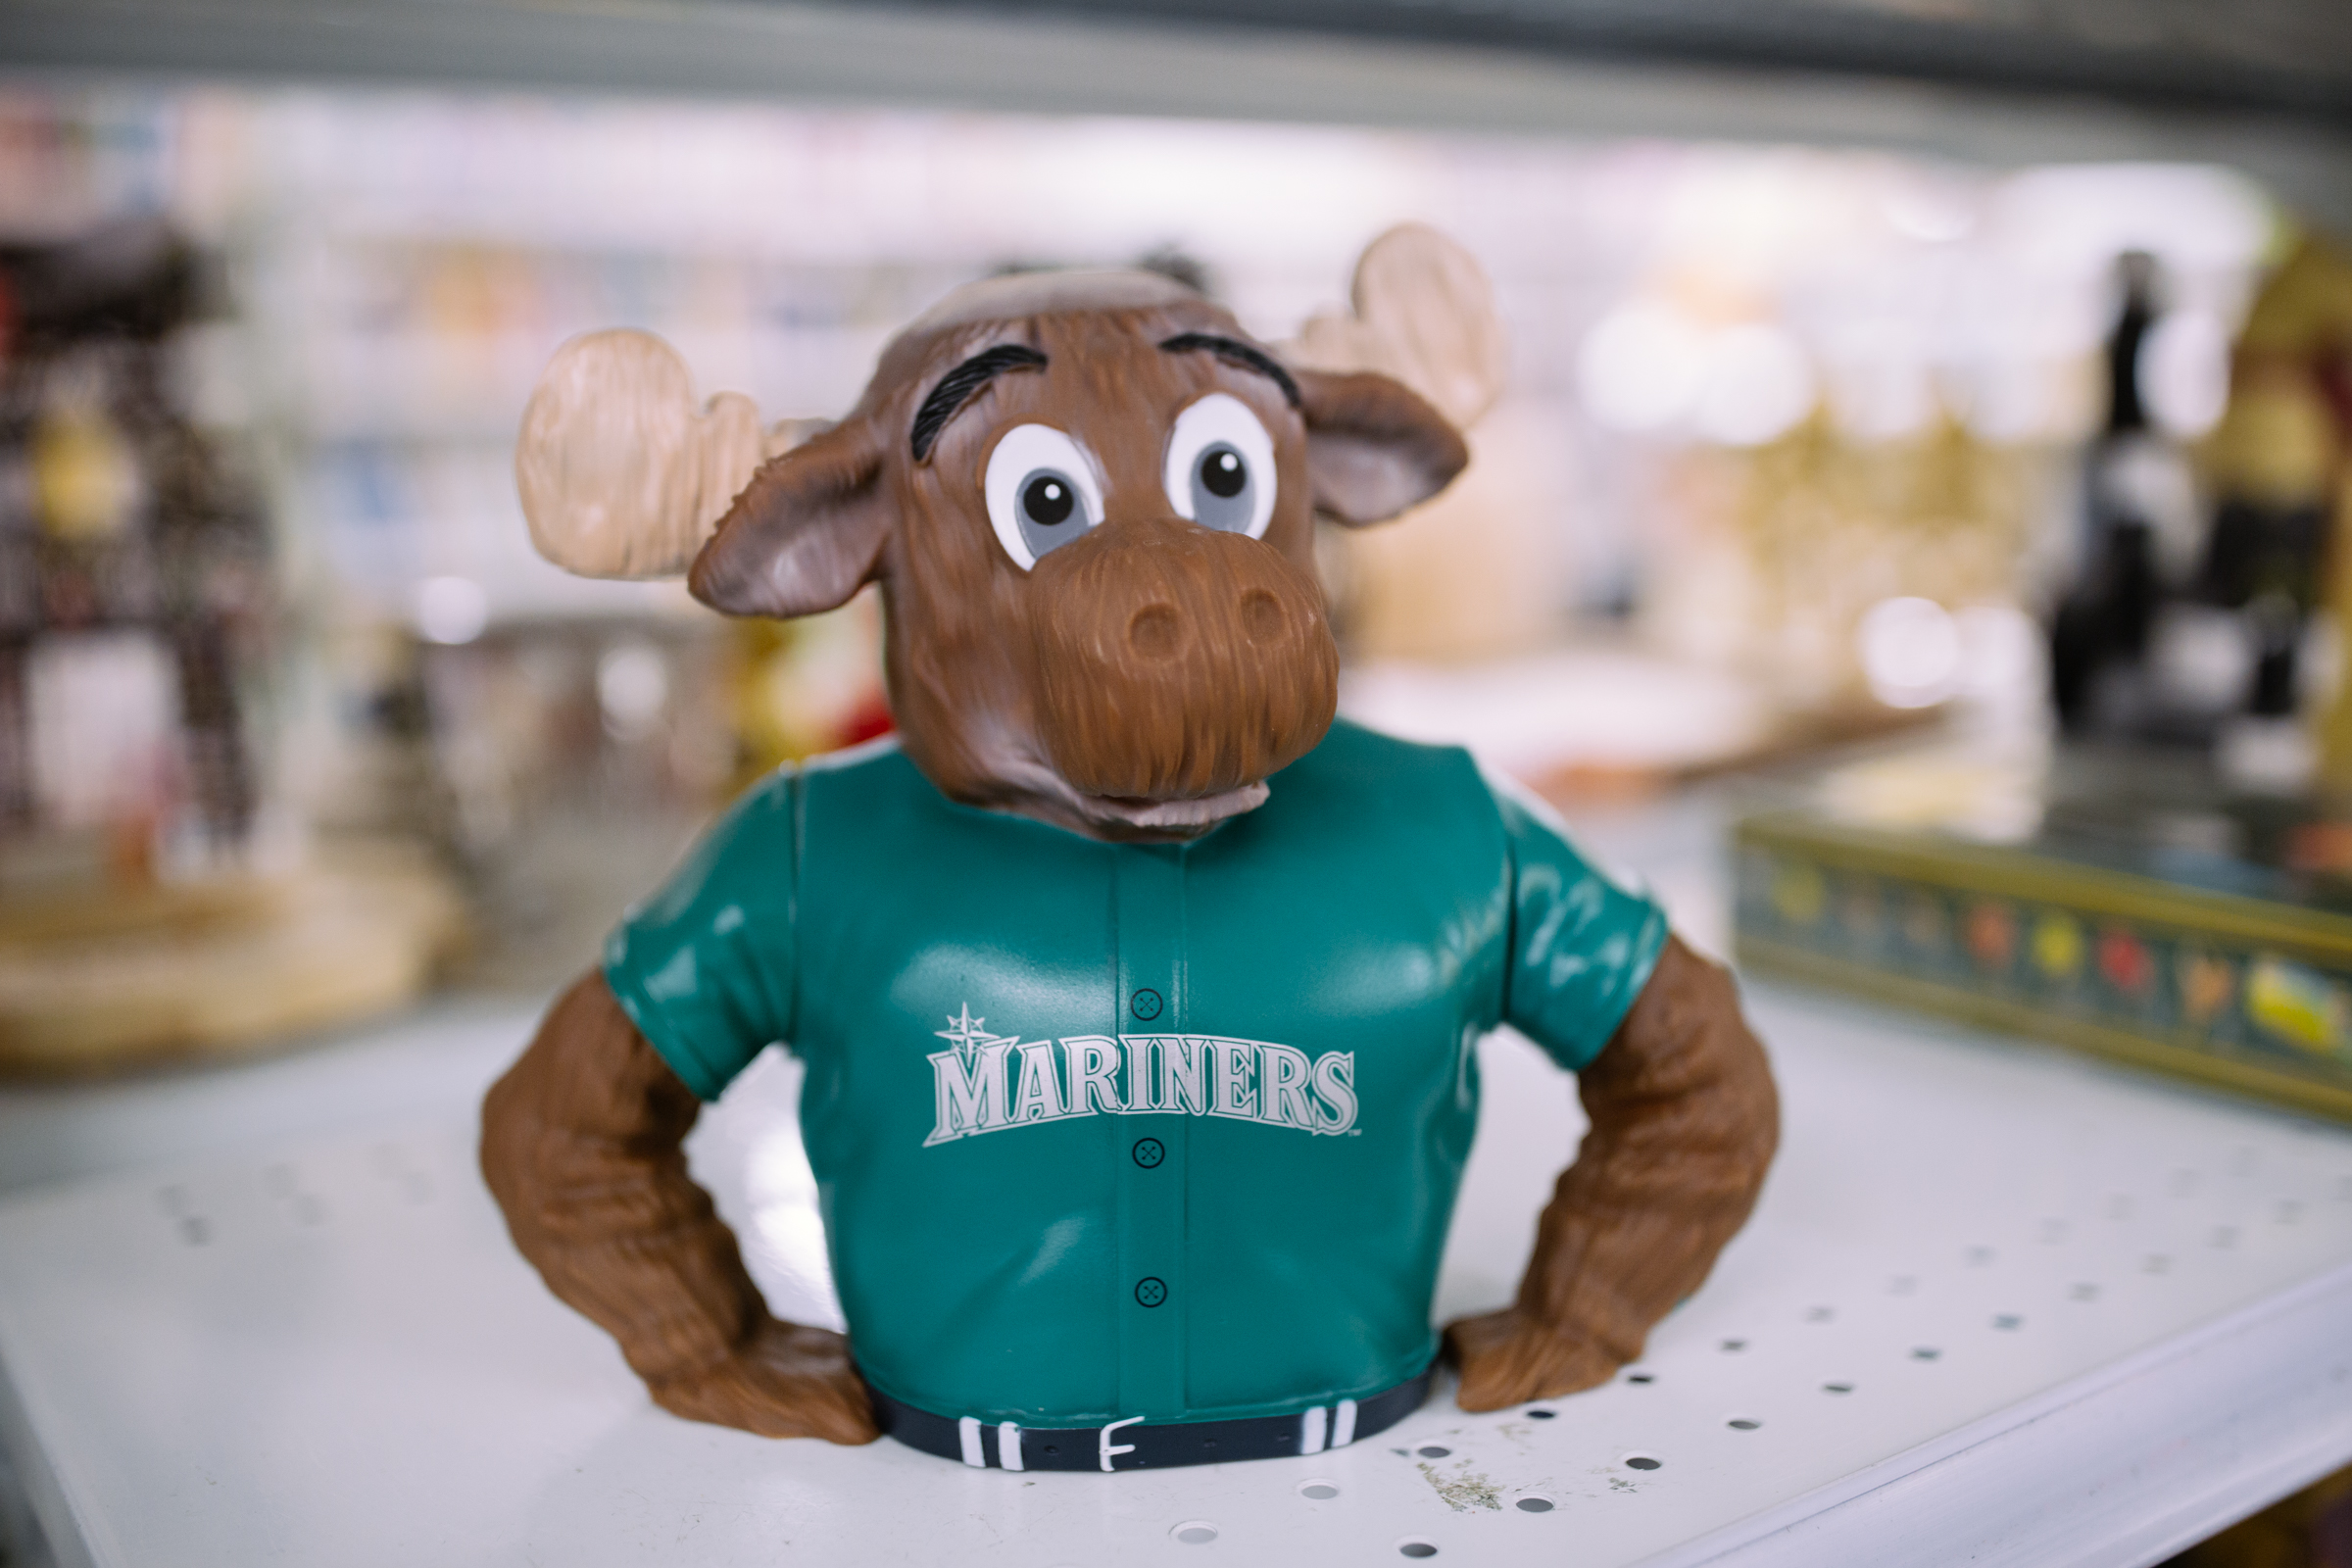 Mariner Moose piggy bank. $3.99                      Are you going to a White Elephant Gift Exchange this year? We headed to our local Value Village to give you some gift ideas and how much they cost. (Image: Joshua Lewis / Seattle Refined)